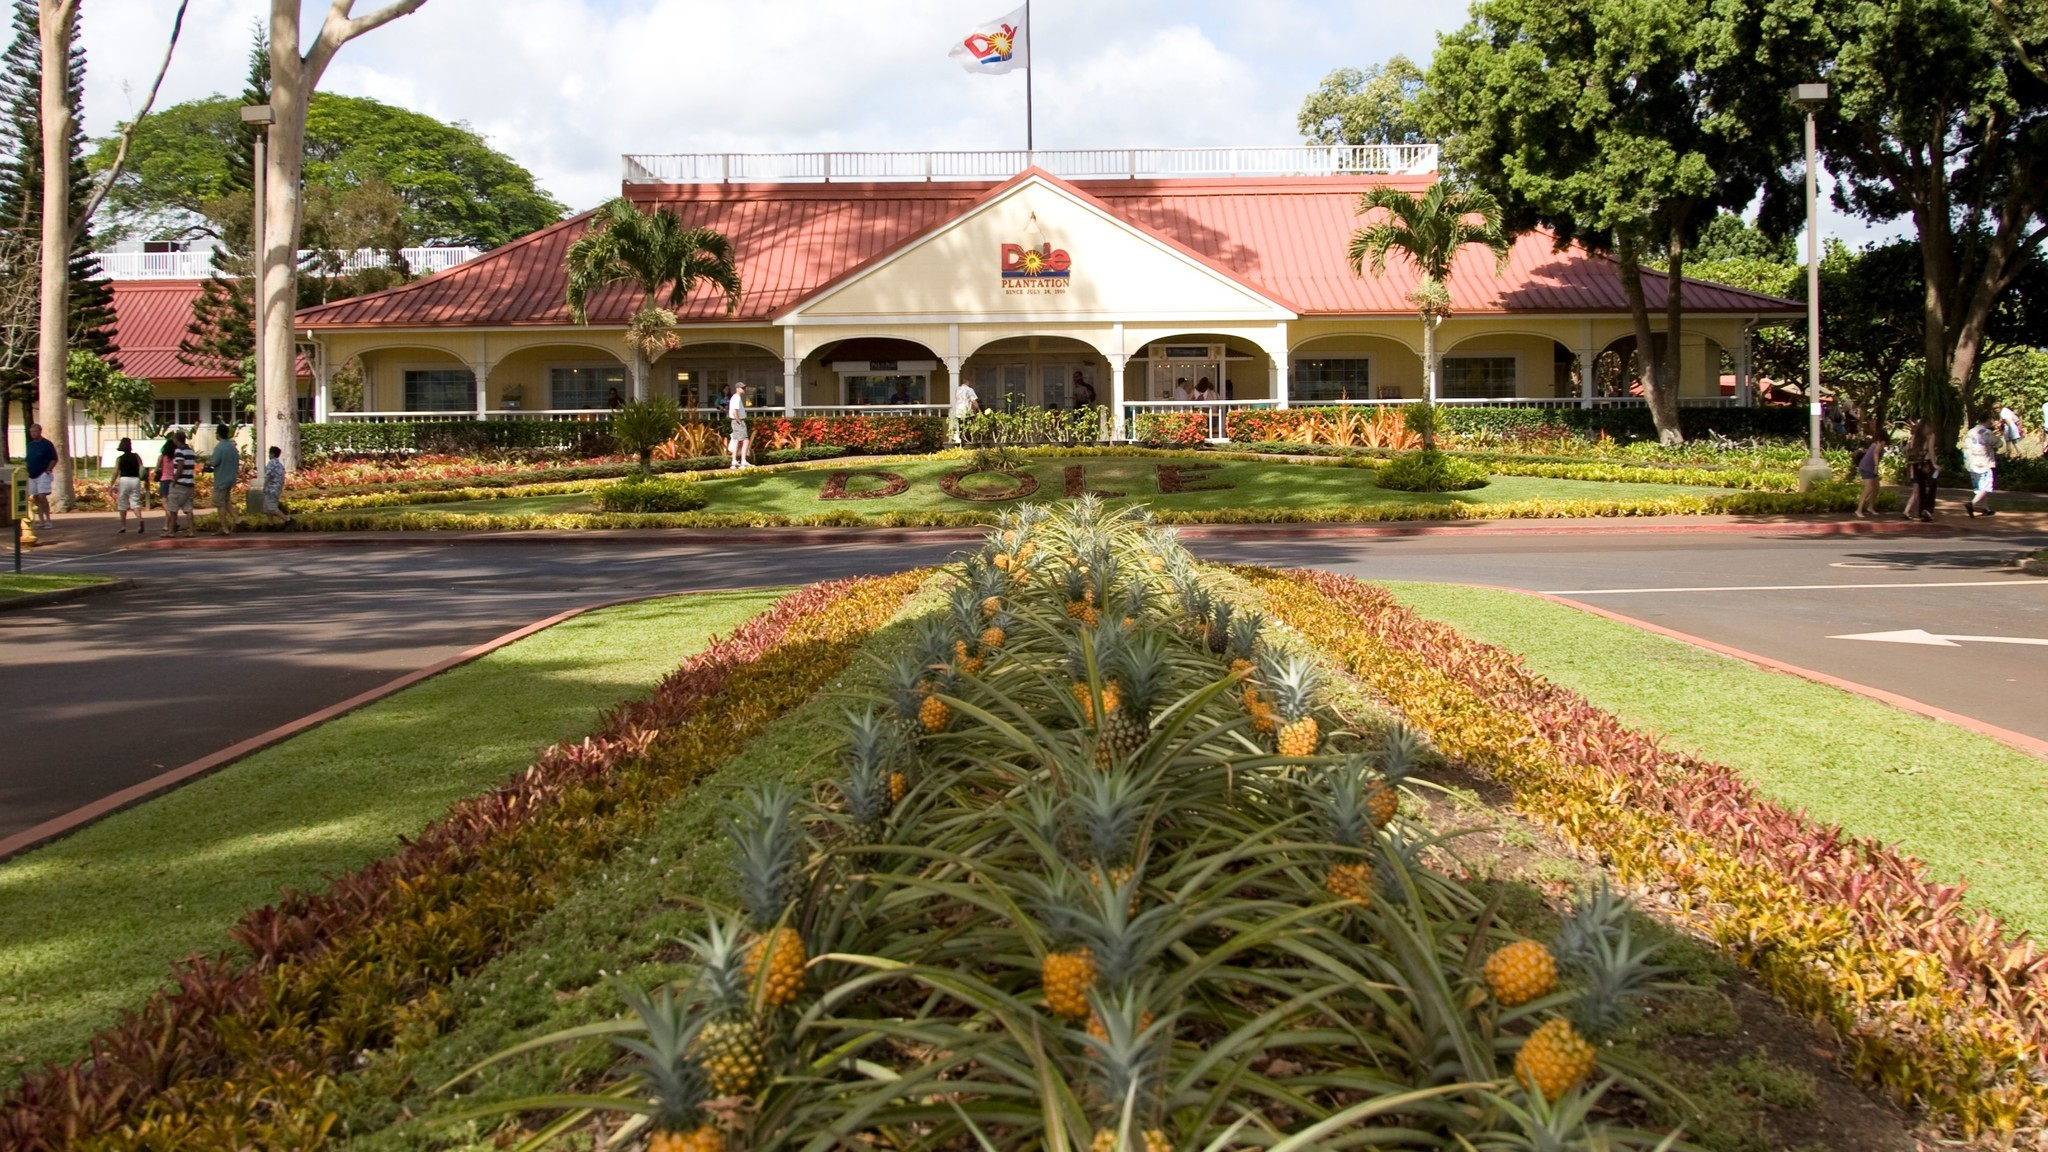 Where to find fresh pineapple (and learn its history) in Hawaii